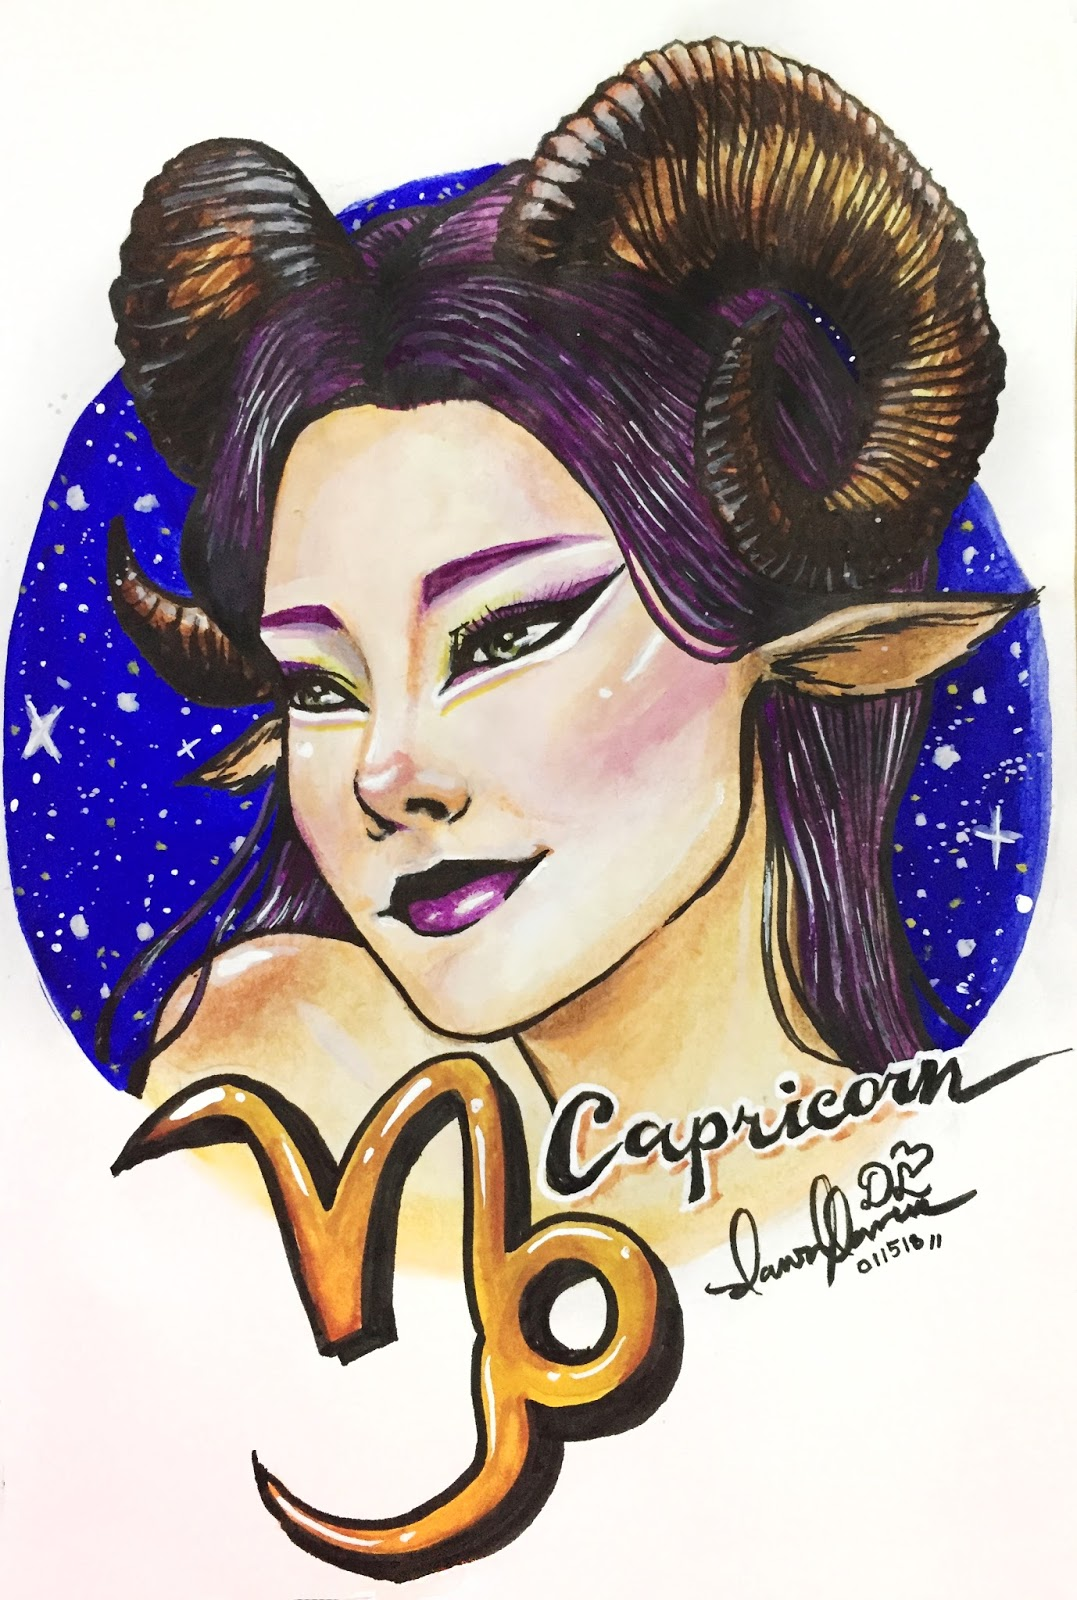 5120ad61128 My concept here are the zodiac signs turned into well... sort of human-like  or an anthropomorphic versions of the zodiacs. Here's Capricorn which is  usually ...